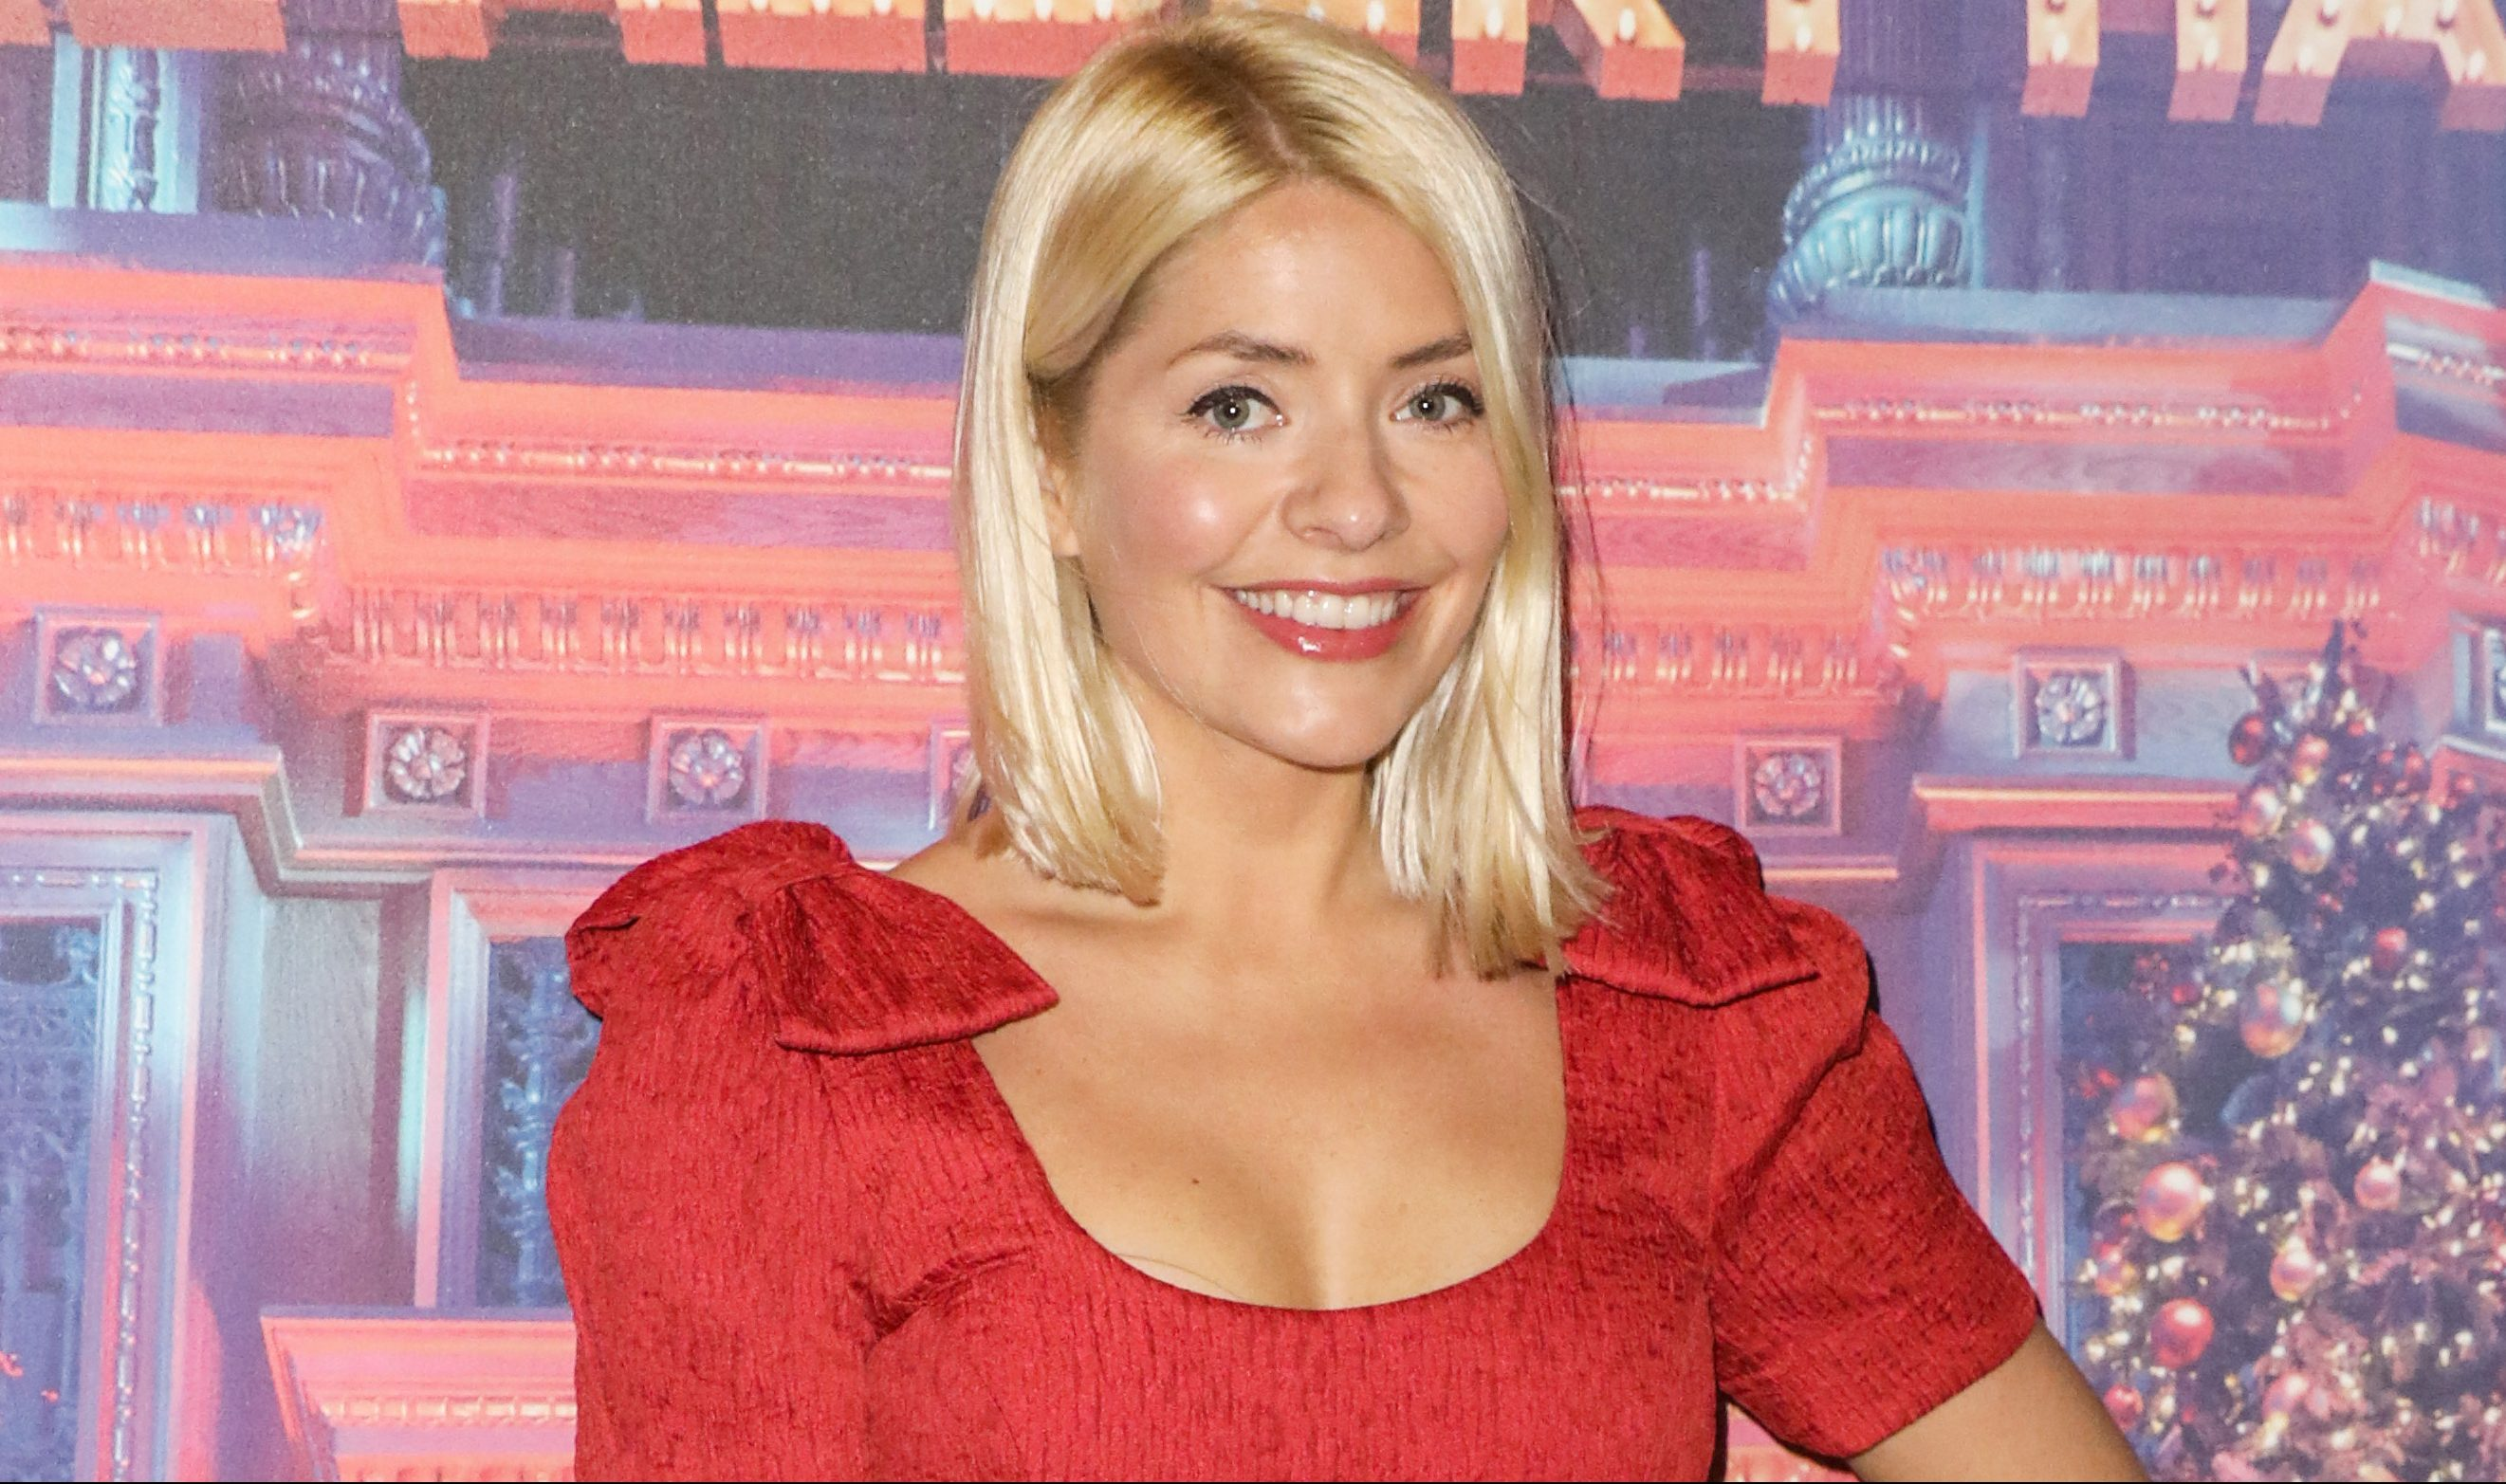 Holly Willoughby stuns fans as she shows off brunette hair in throwback photo